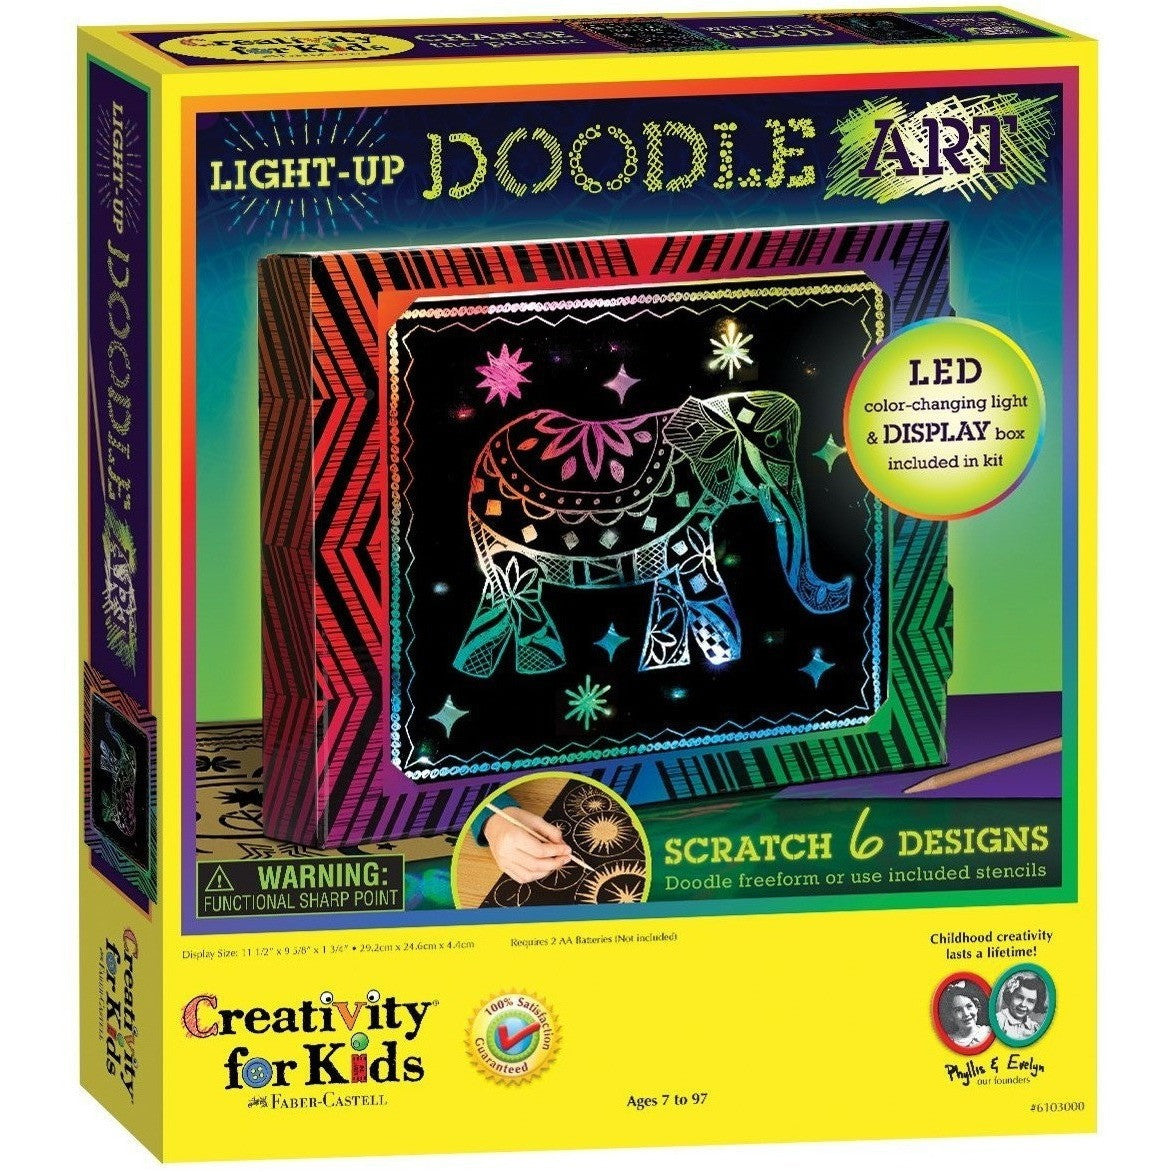 Arts and craft kits - Arts And Crafts Kits For Kids Creativity For Kids Light Up Doodle Art Craft Kits